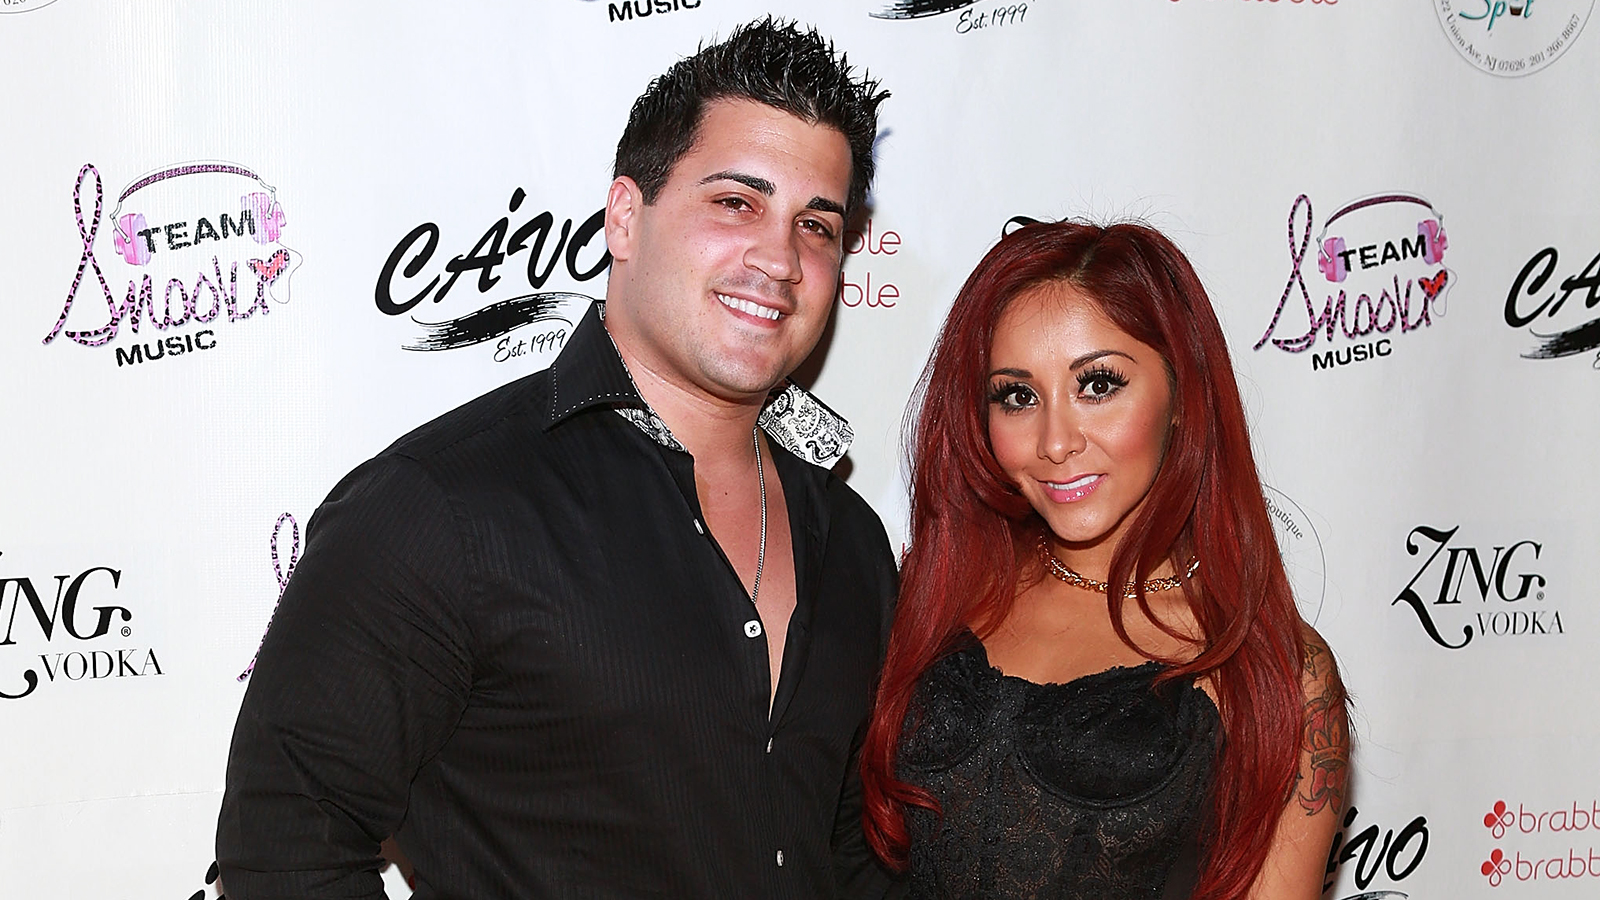 Jersey Shore' Star Snooki and Jionni Relationship Timeline